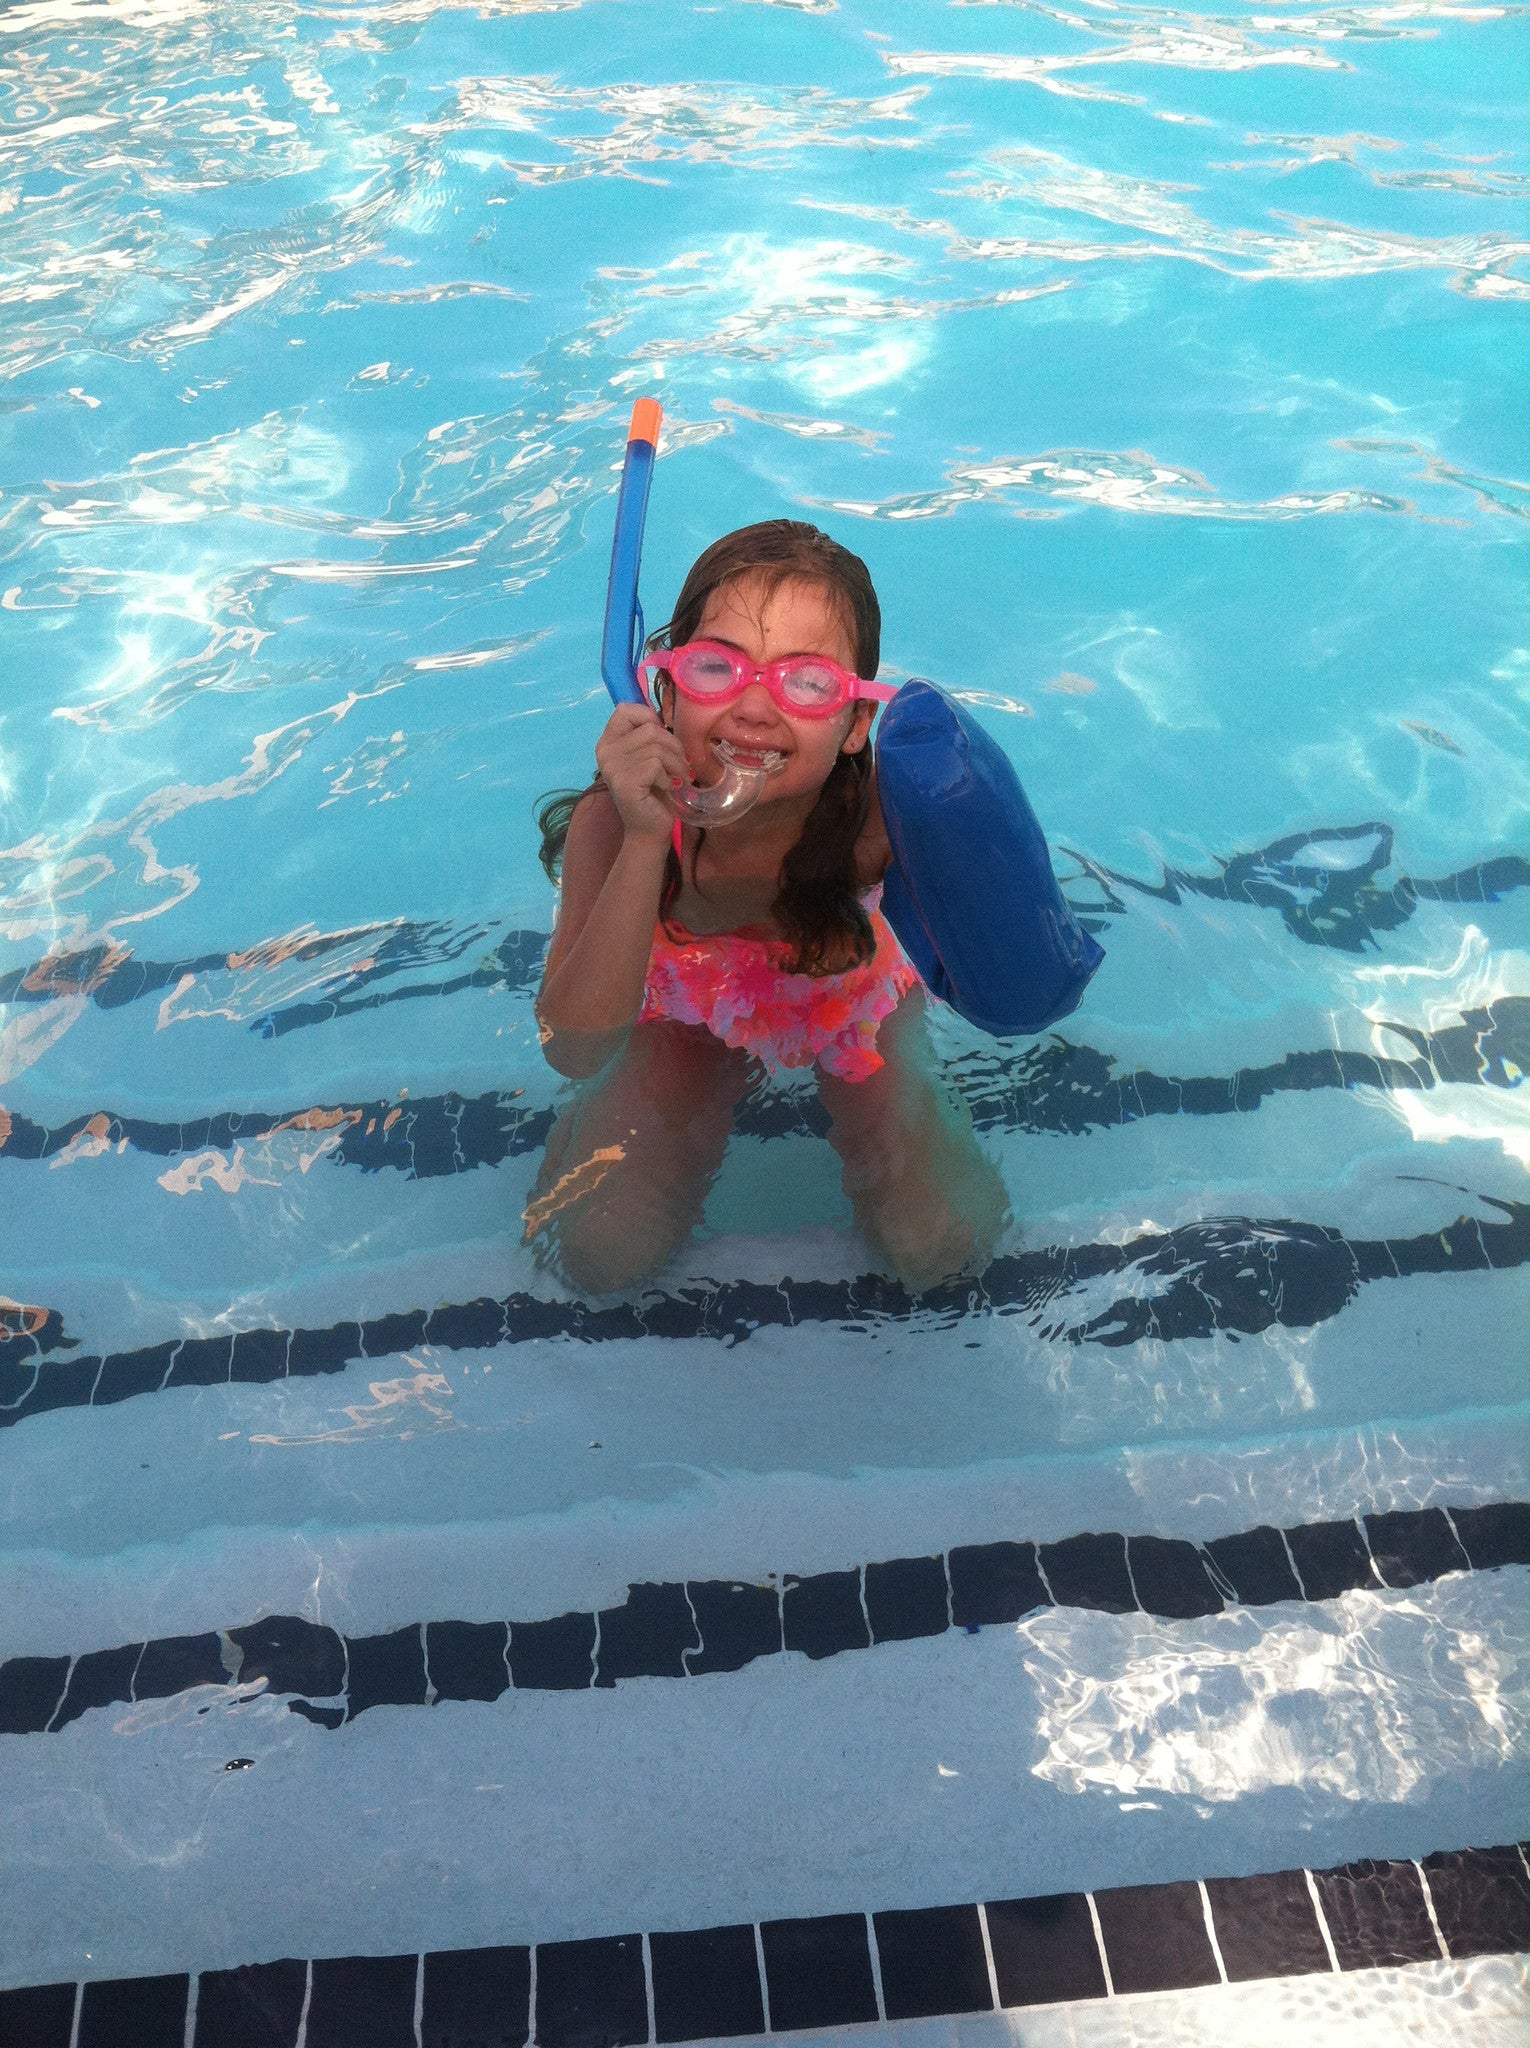 Waterproof Cast Cover For Swimming Arm Drycast